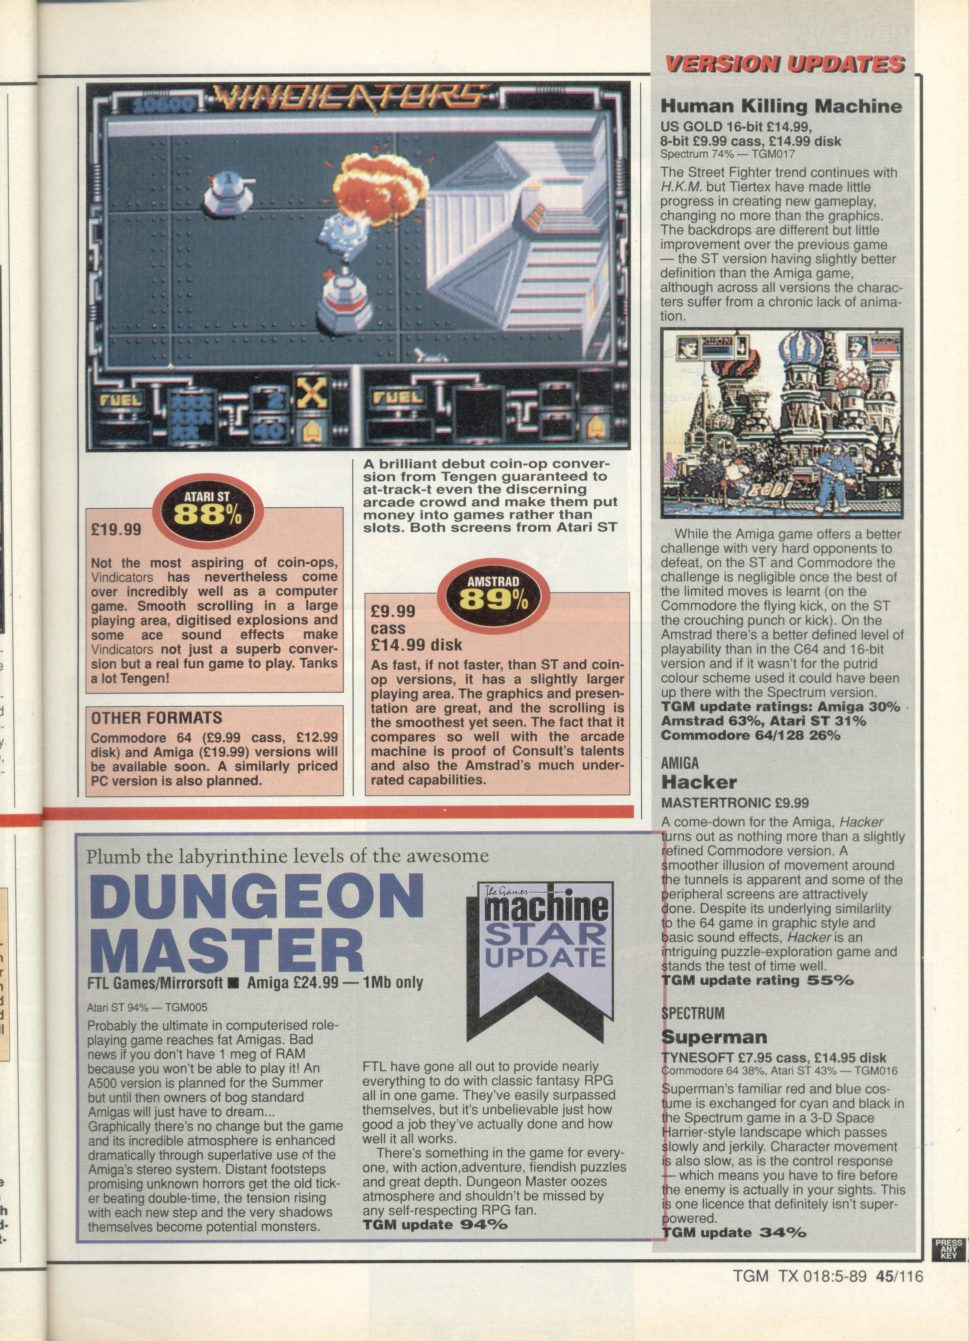 Dungeon Master for Amiga Review published in British magazine 'The Game Machine', Issue #18, May 1989, Page 45